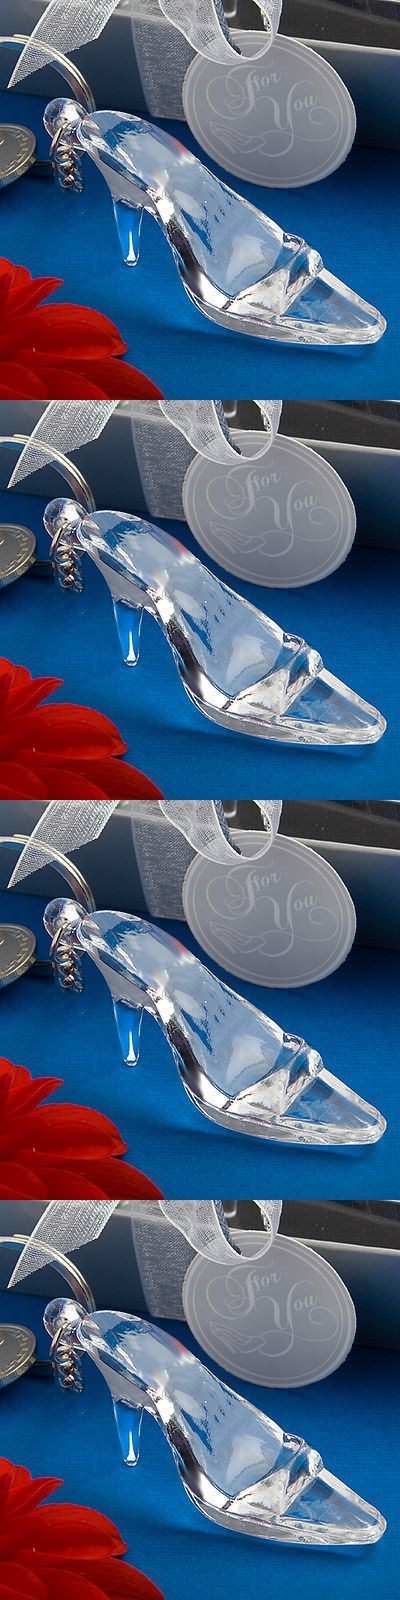 Favors and Party Bag Fillers 26385: 100 Cinderella Shoe Key Chain Bridal Shower Wedding Favor Sweet Sixteen Bulk Lot -> BUY IT NOW ONLY: $118.89 on eBay!